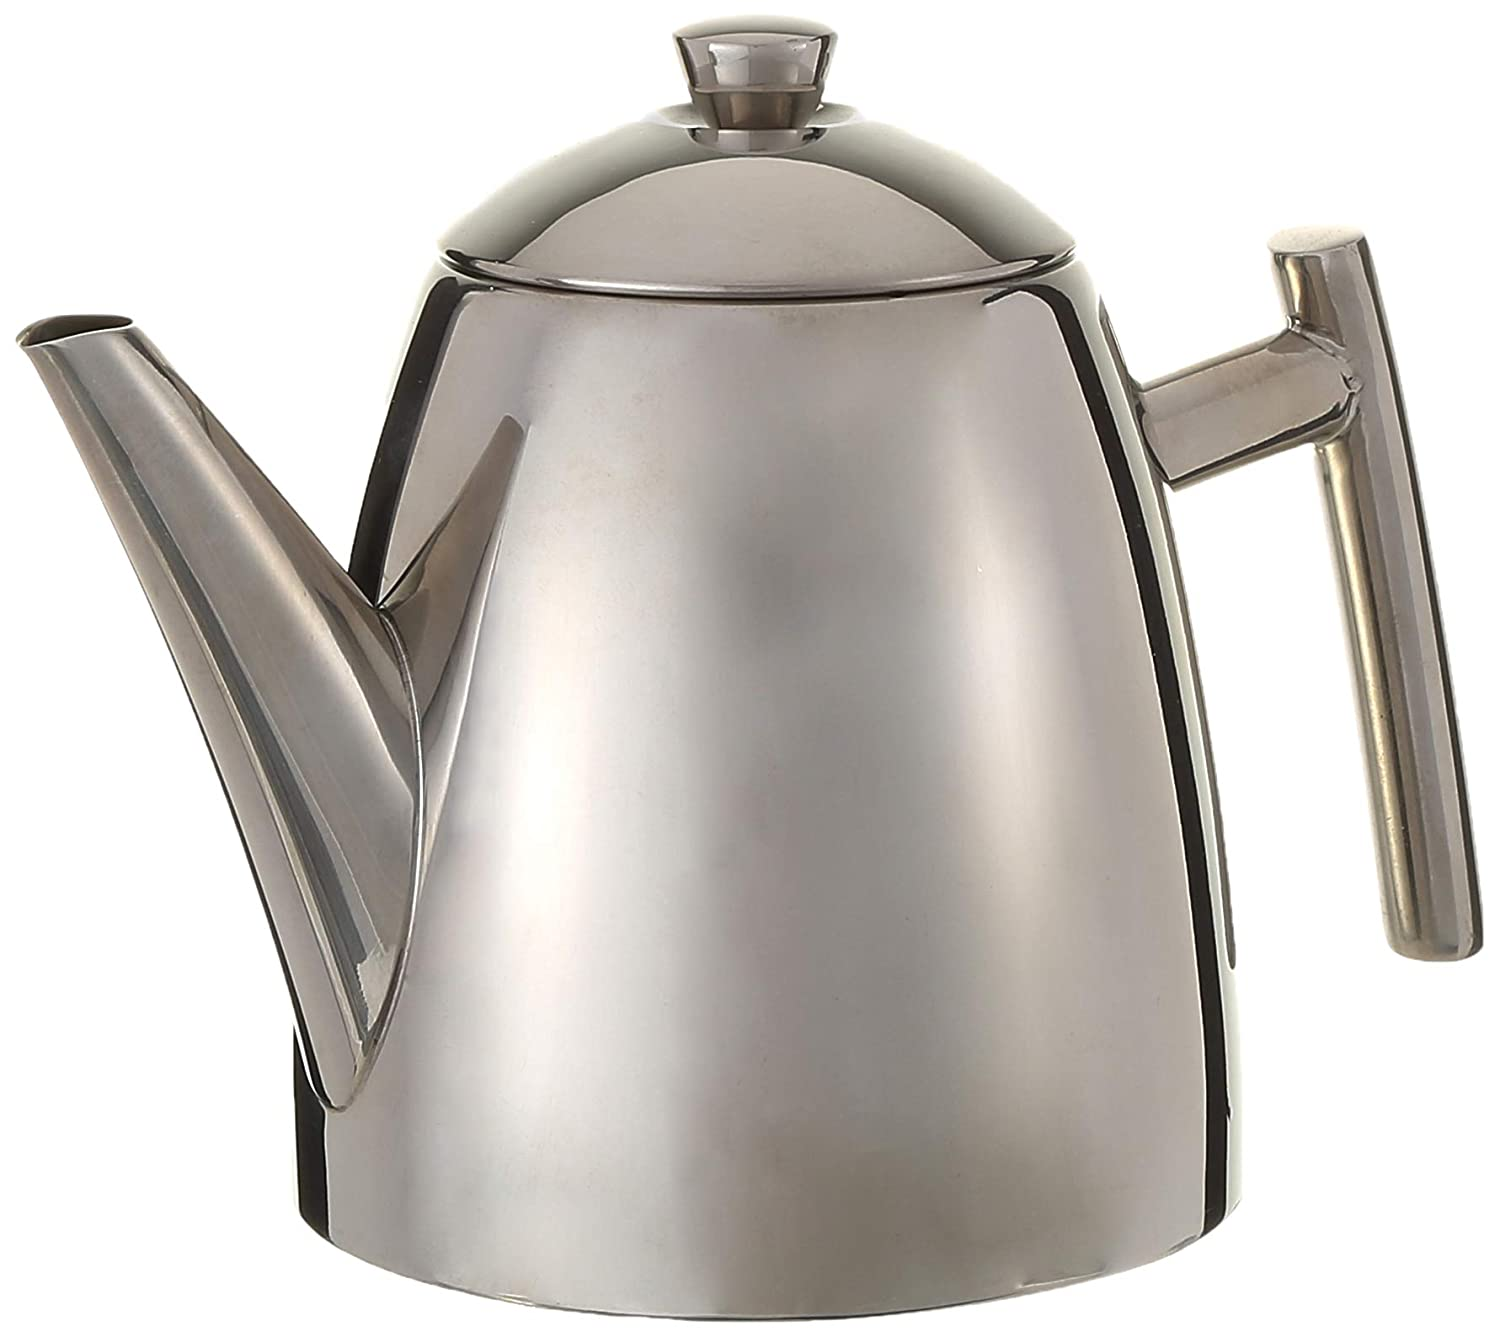 Frieling 18/10 Stainless Steel Primo Teapot with Infuser, 14-ounce 120